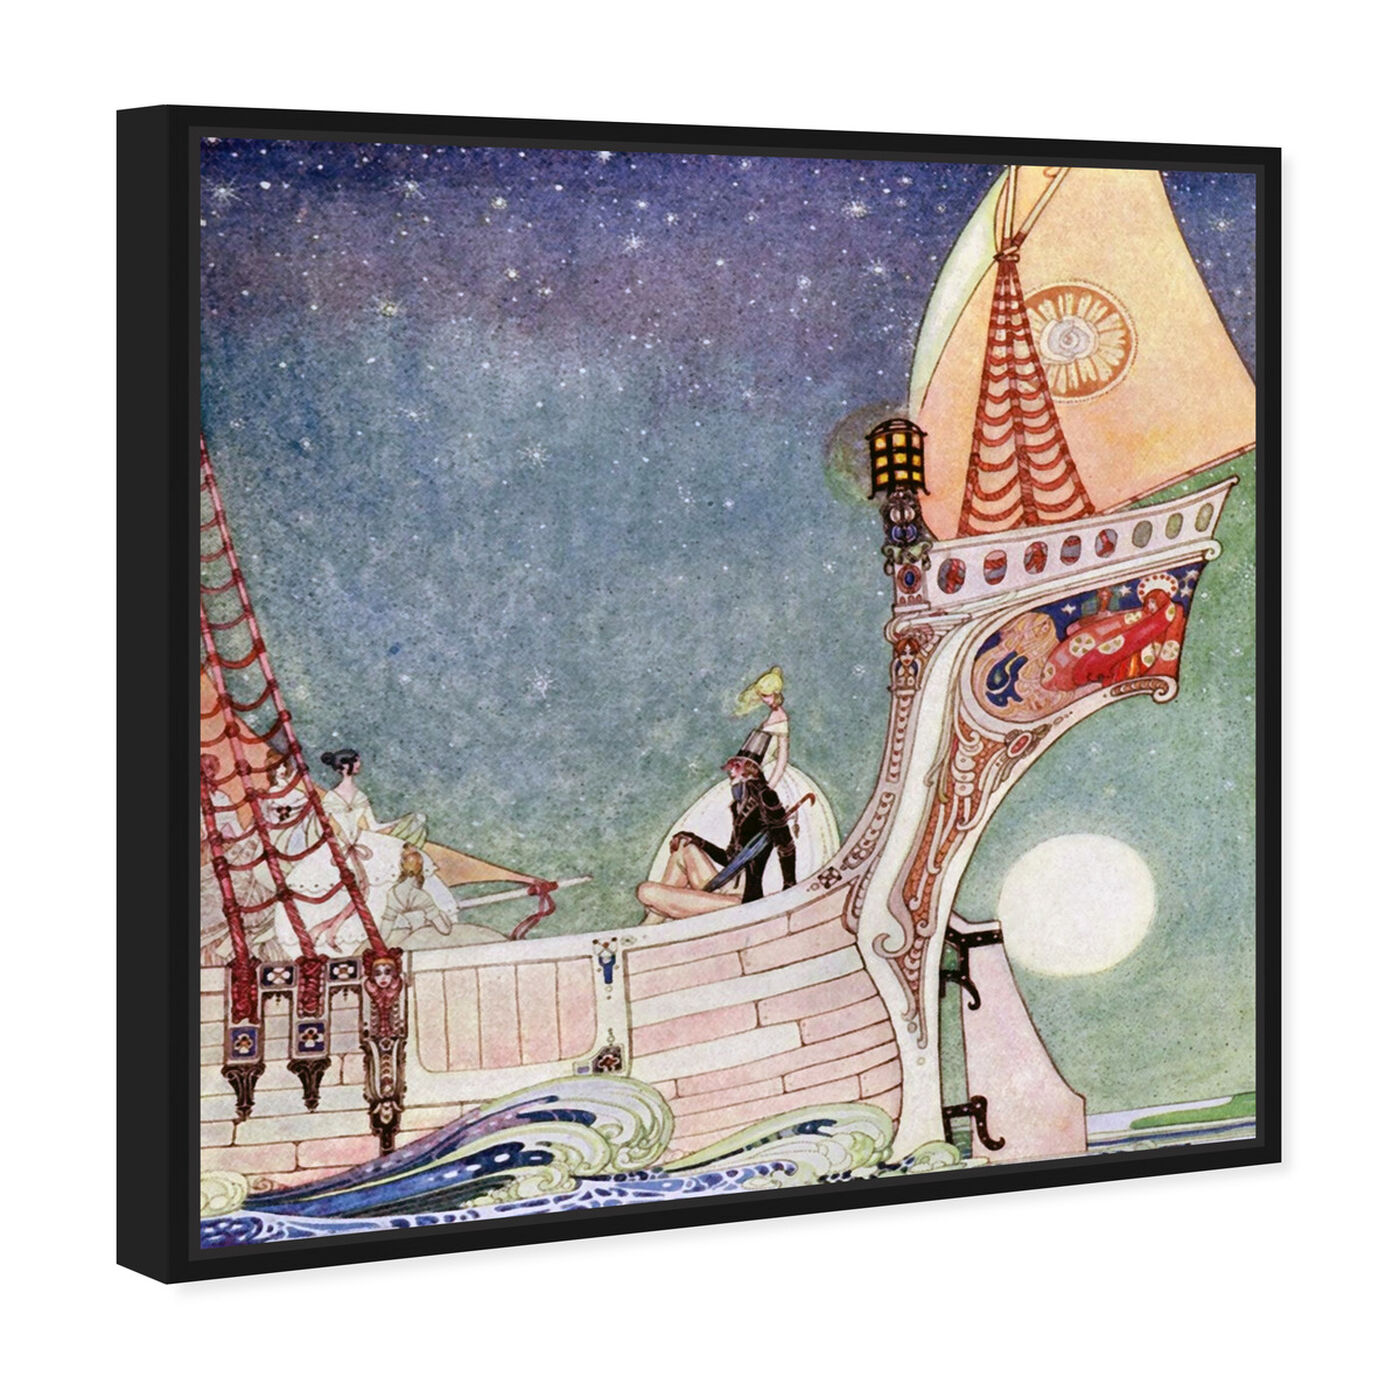 Angled view of Magical Boat featuring fantasy and sci-fi and fairy tales art.